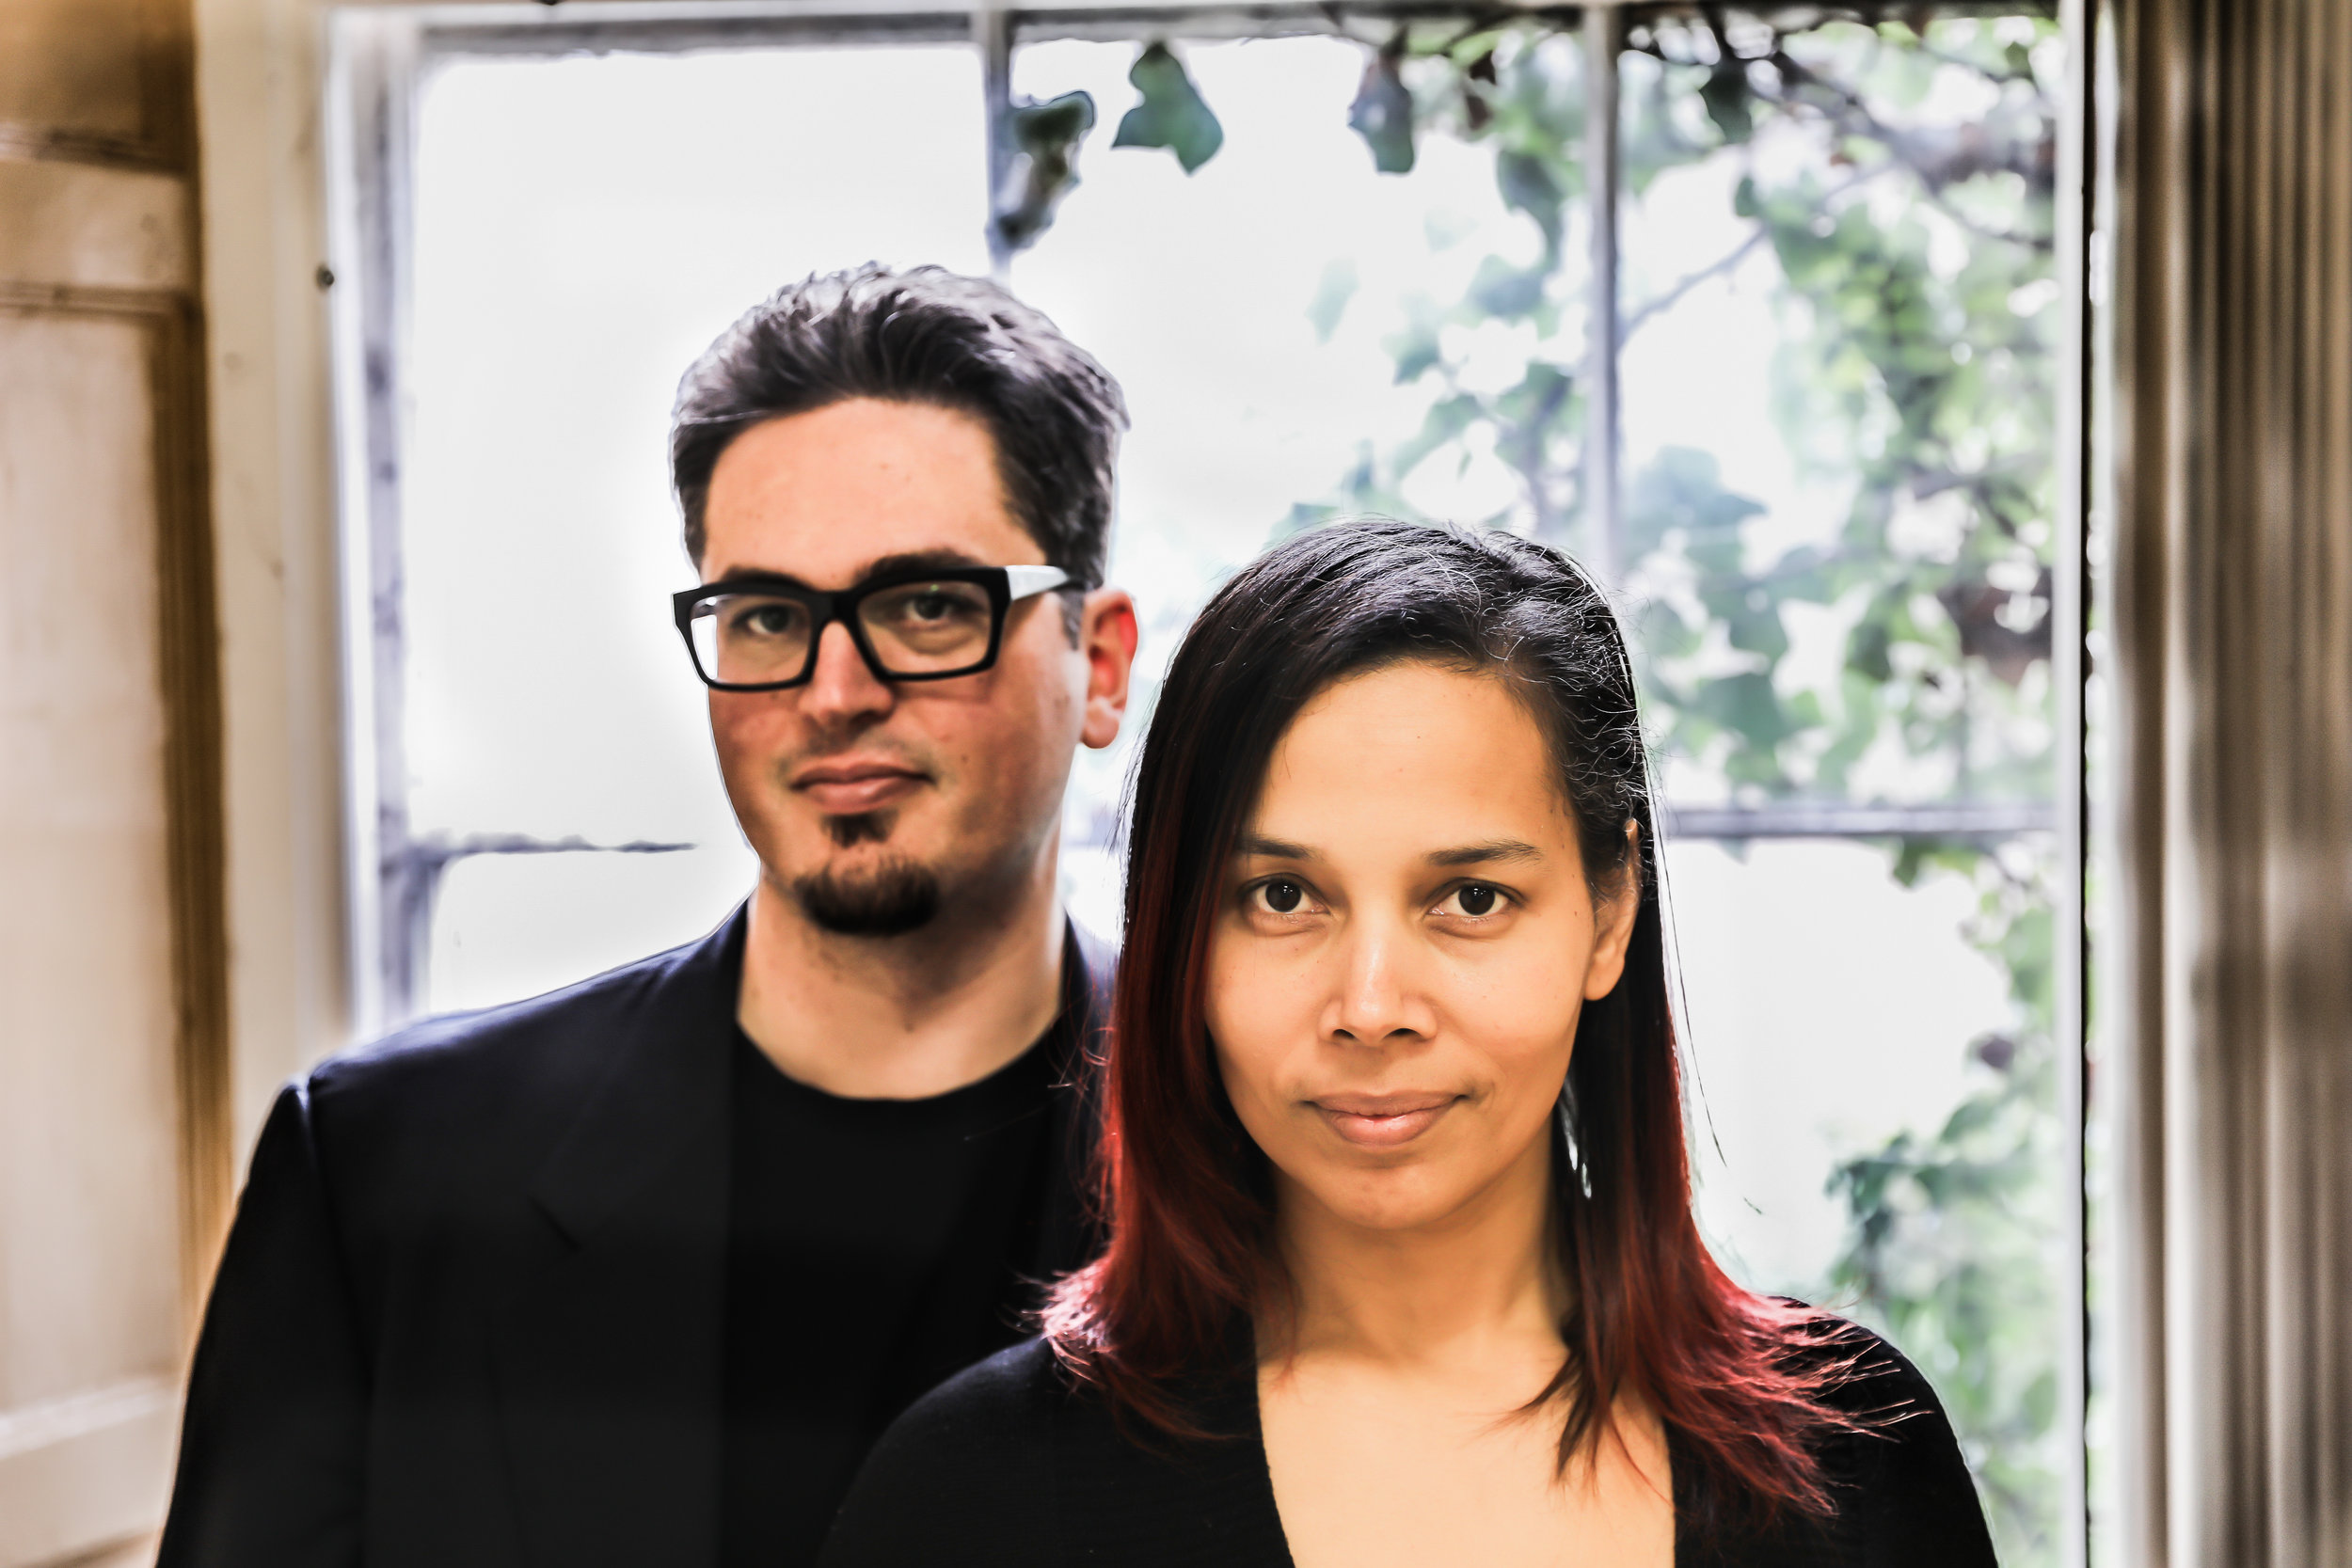 RHIANNON GIDDENS - TicketsTickets are available now through the links below!